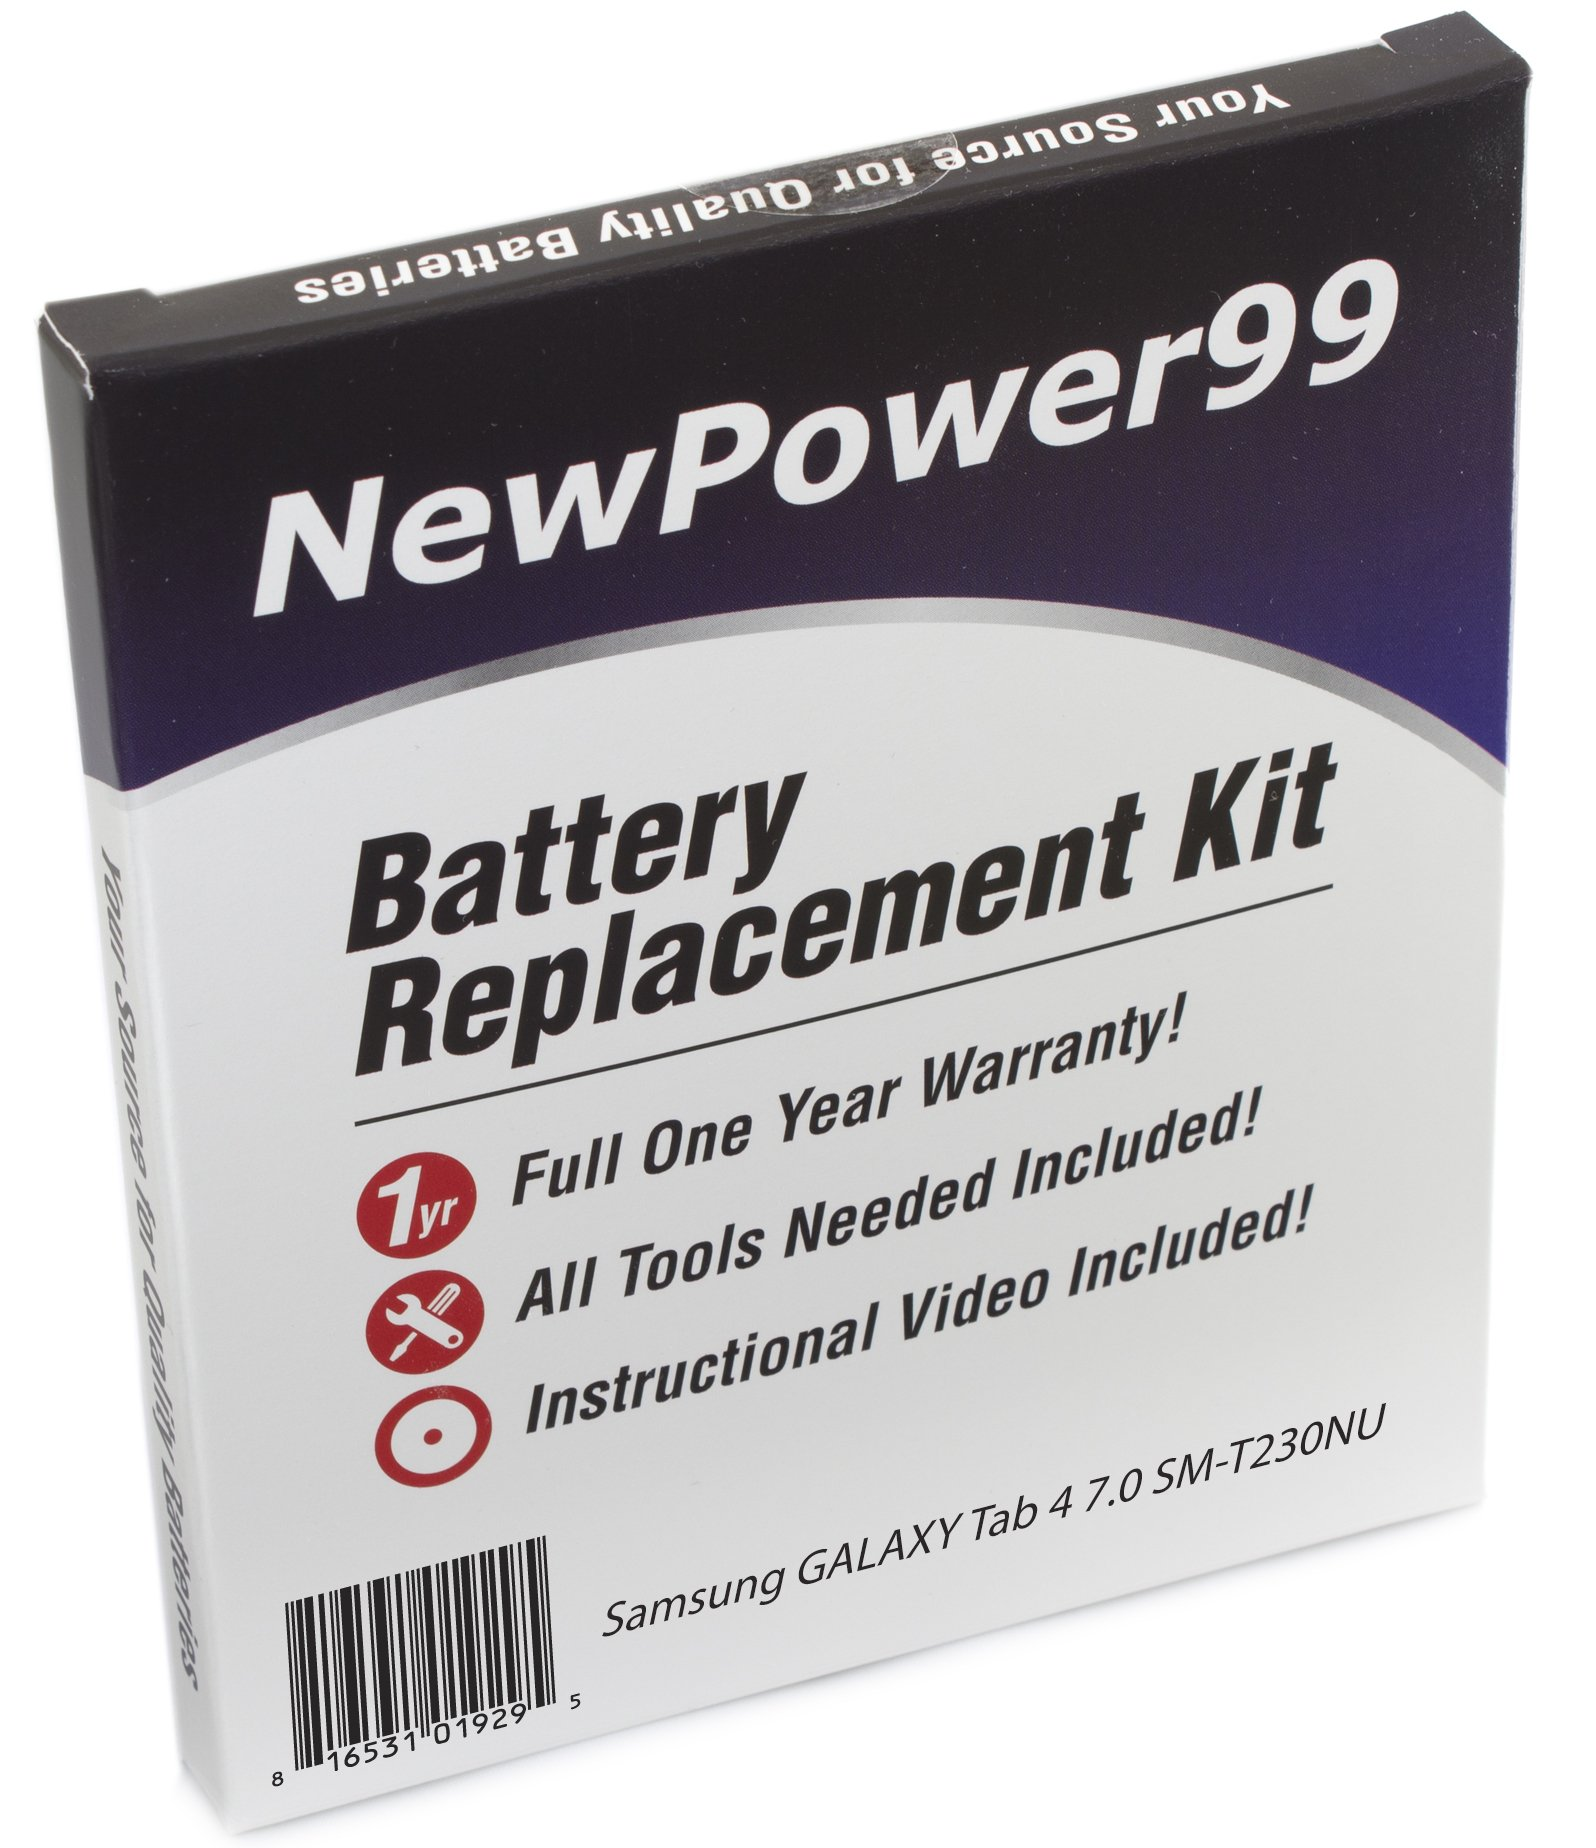 NewPower99 Samsung GALAXY Tab 4 7.0 SM-T230NU Battery Replacement Kit with Video Installation DVD, Installation Tools, and Extended Life Battery